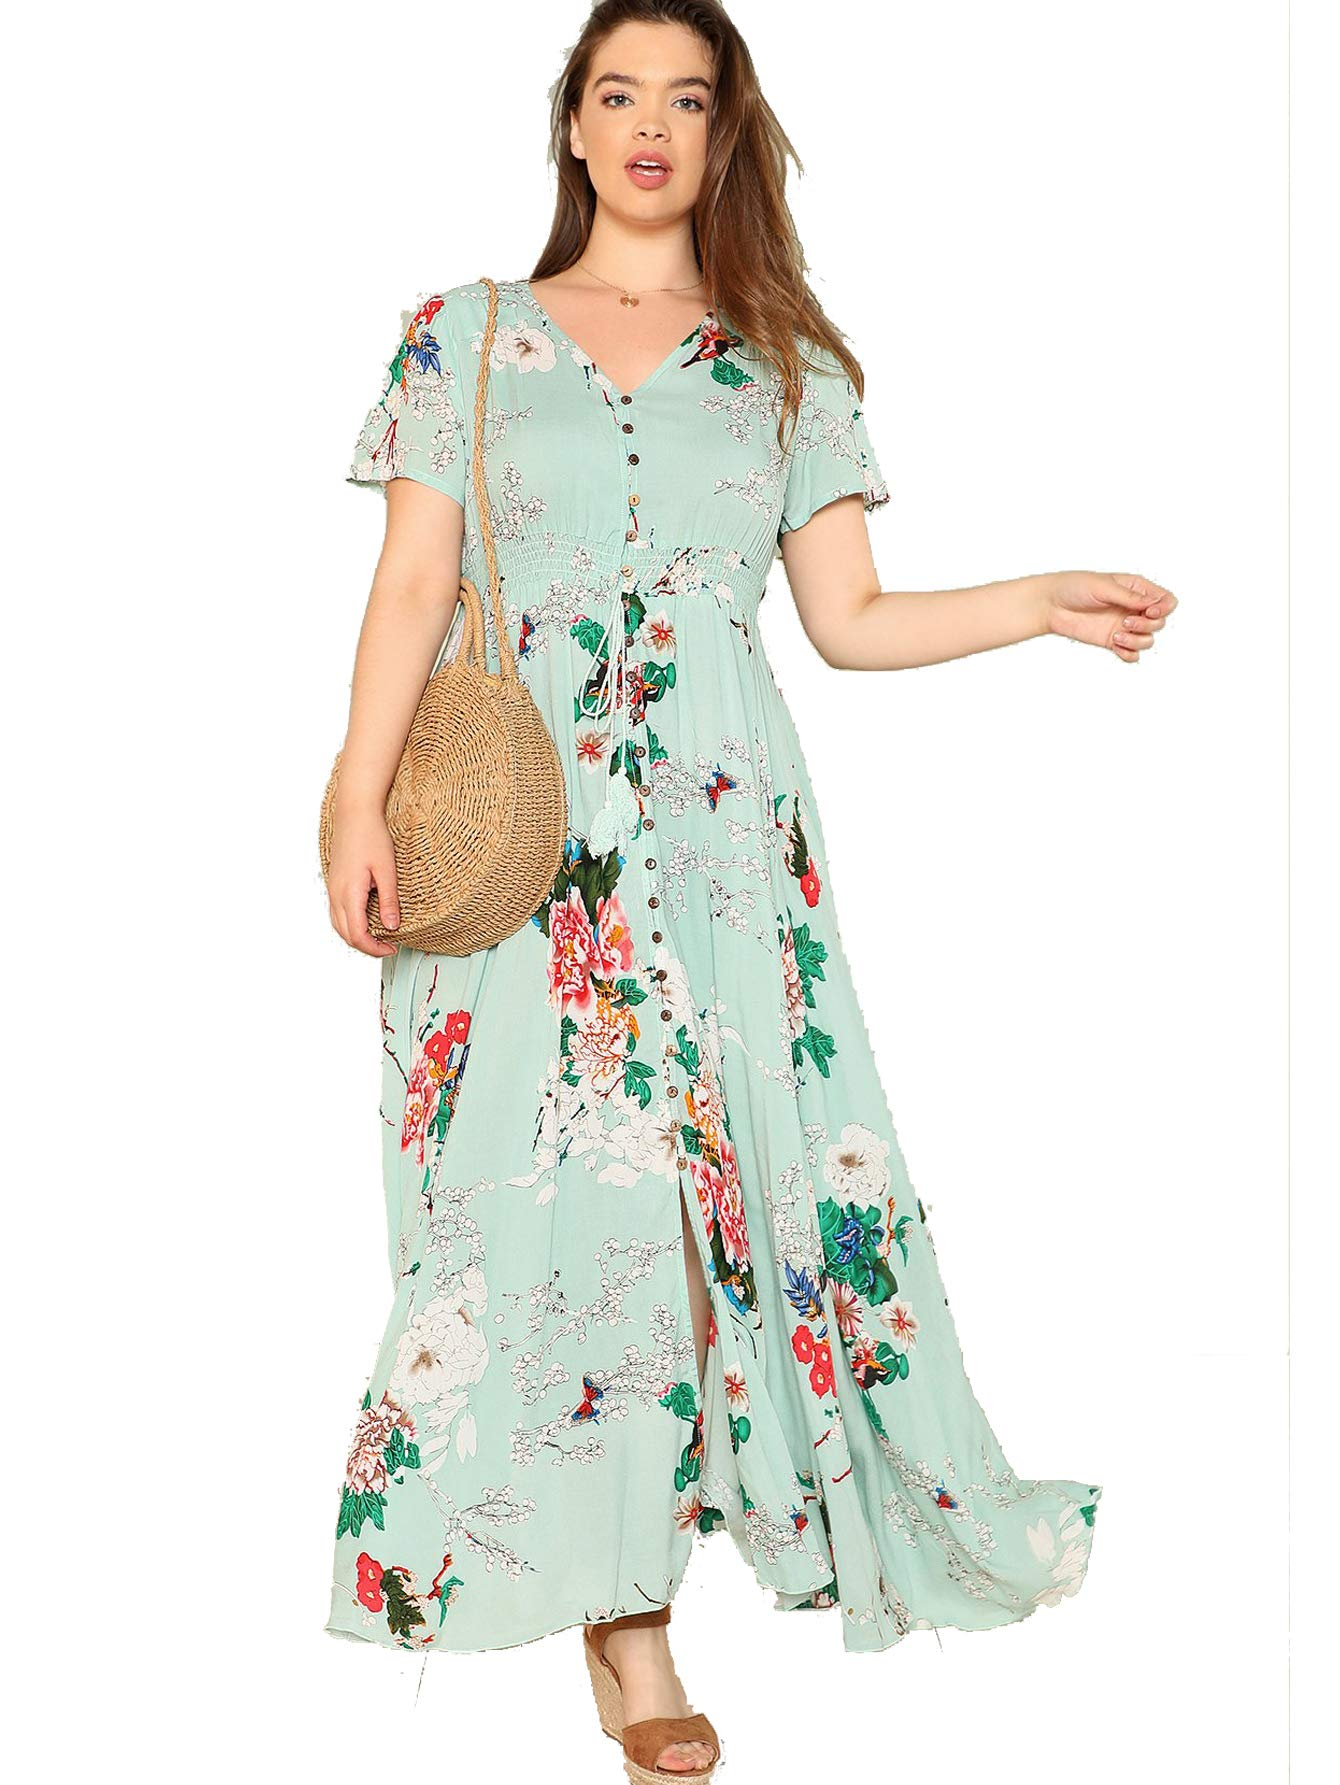 Milumia Plus Size Button Down Homecoming Maxi Dress Party Floral Printed Boho Oversized Dress Evening Prom Dress 1XL